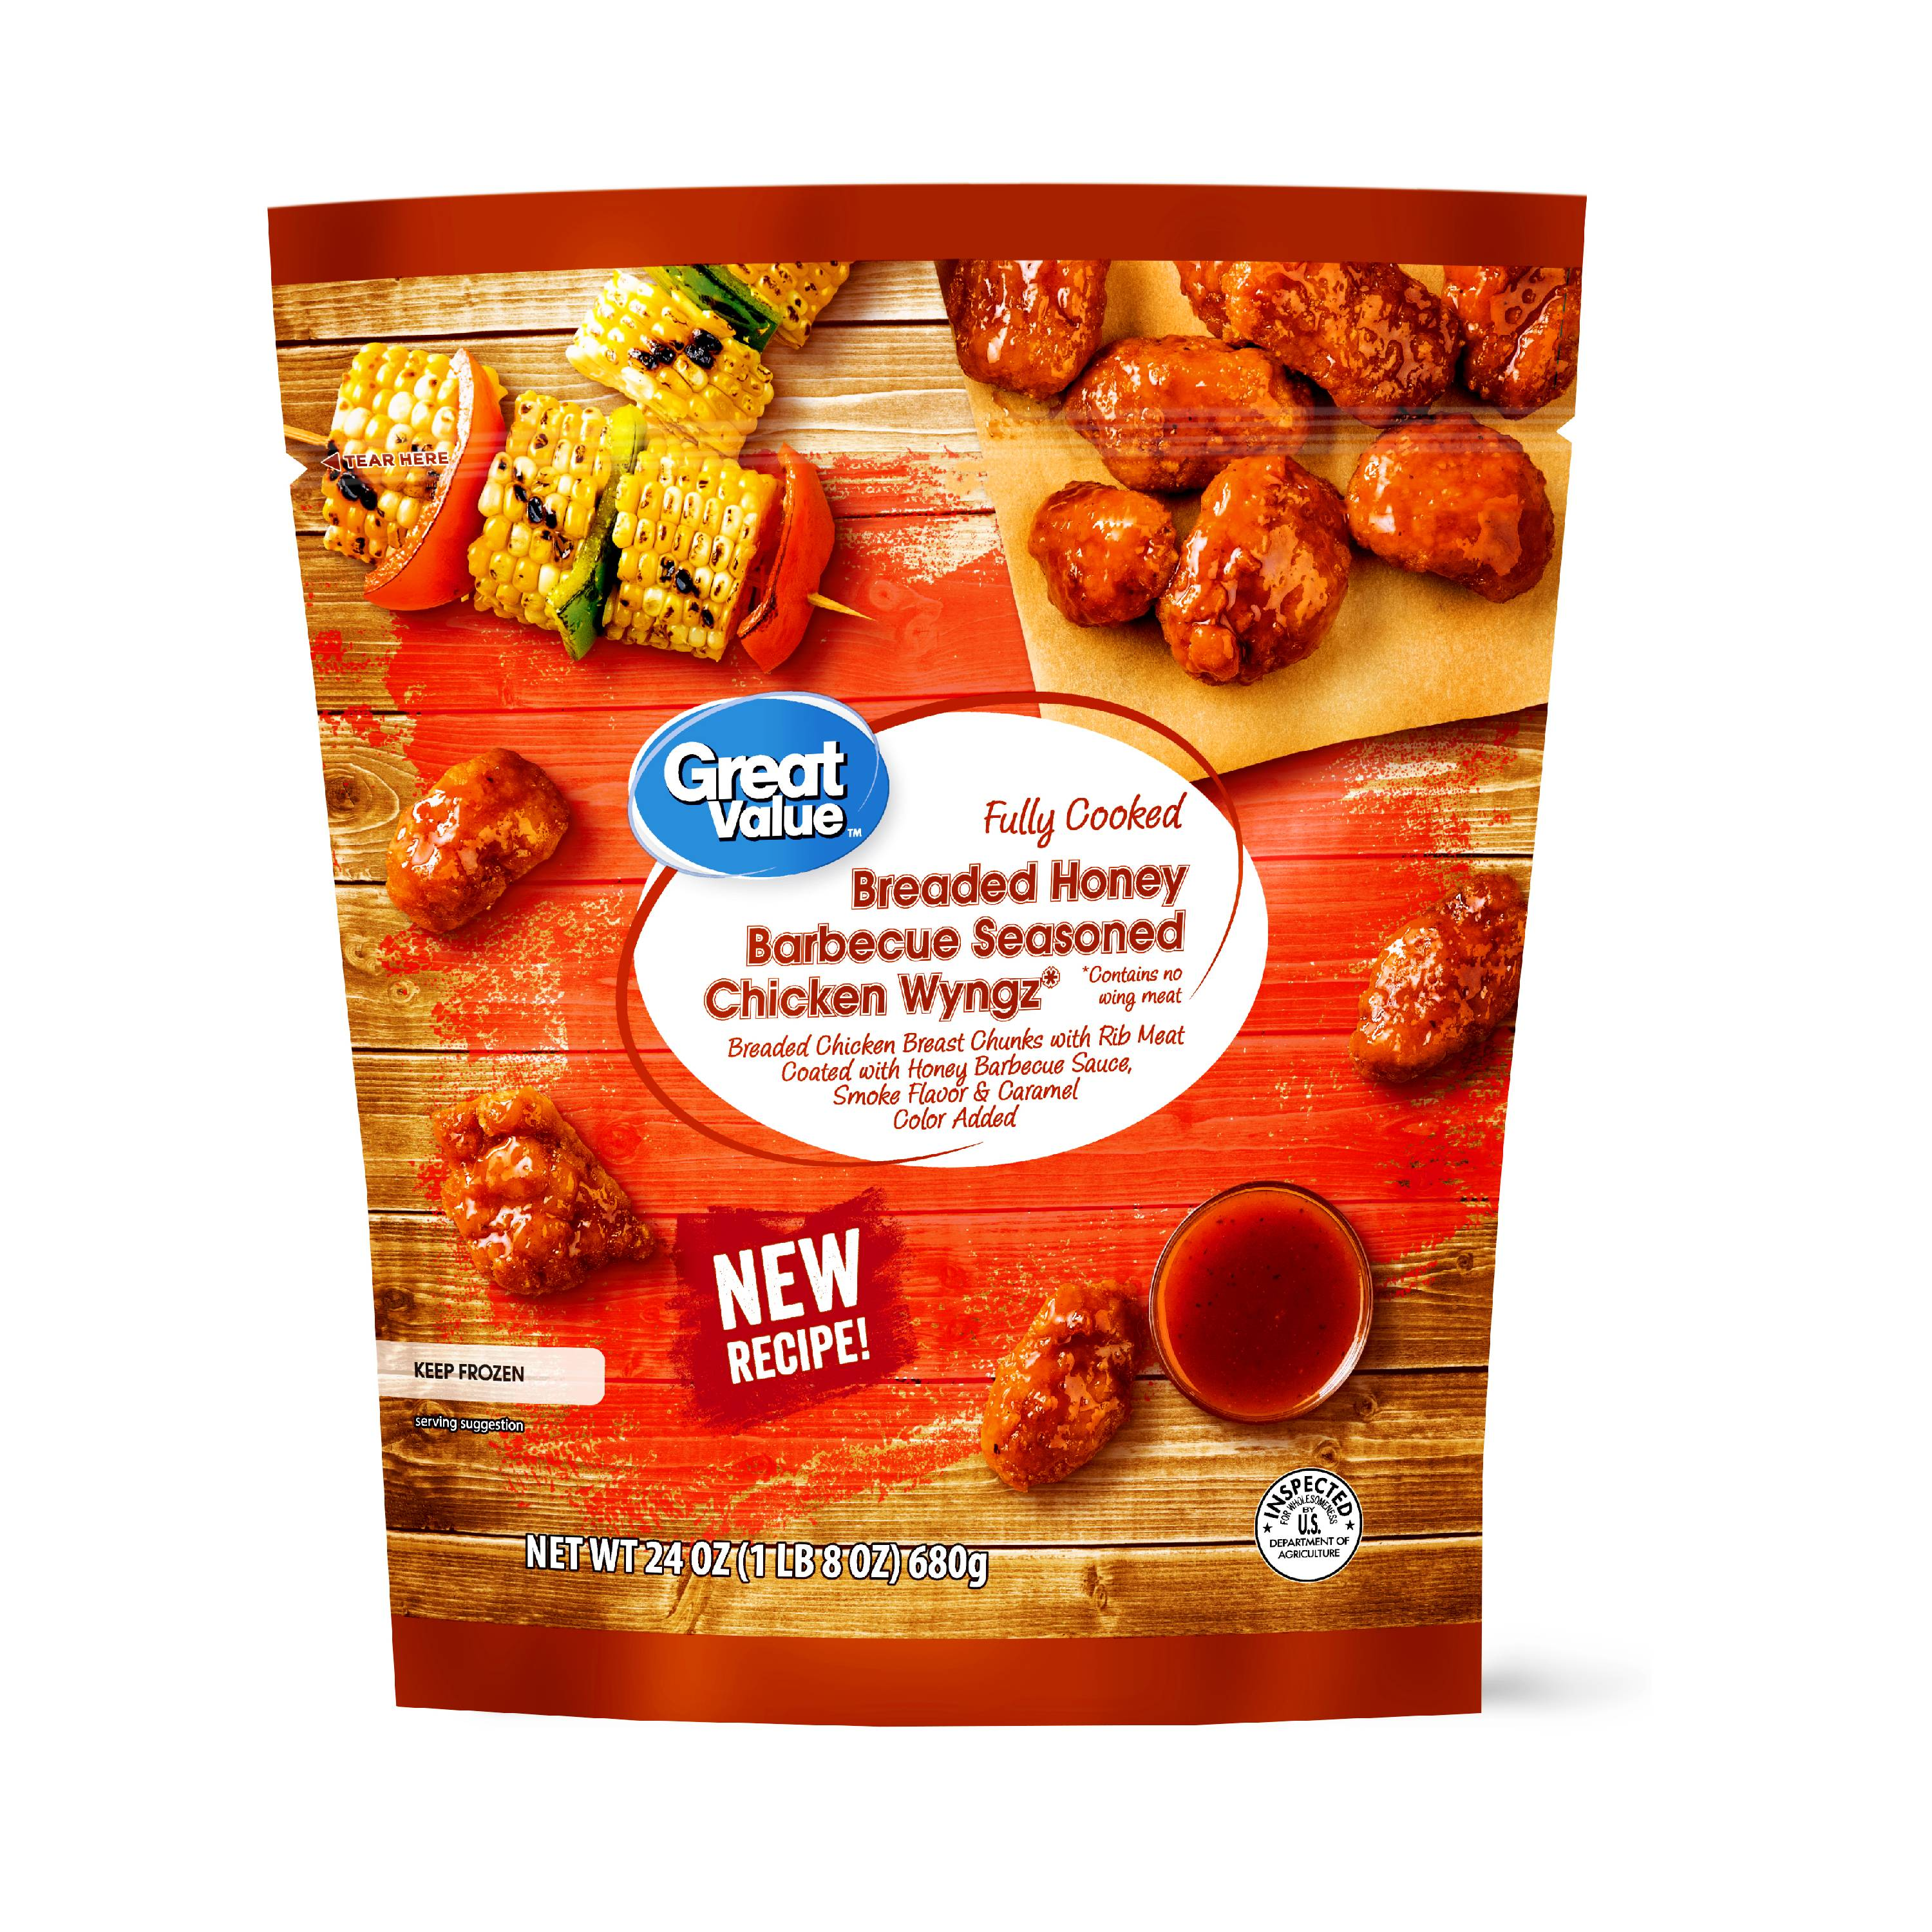 Great Value Breaded Honey Barbecue Seasoned Chicken Wyngz, 24 oz